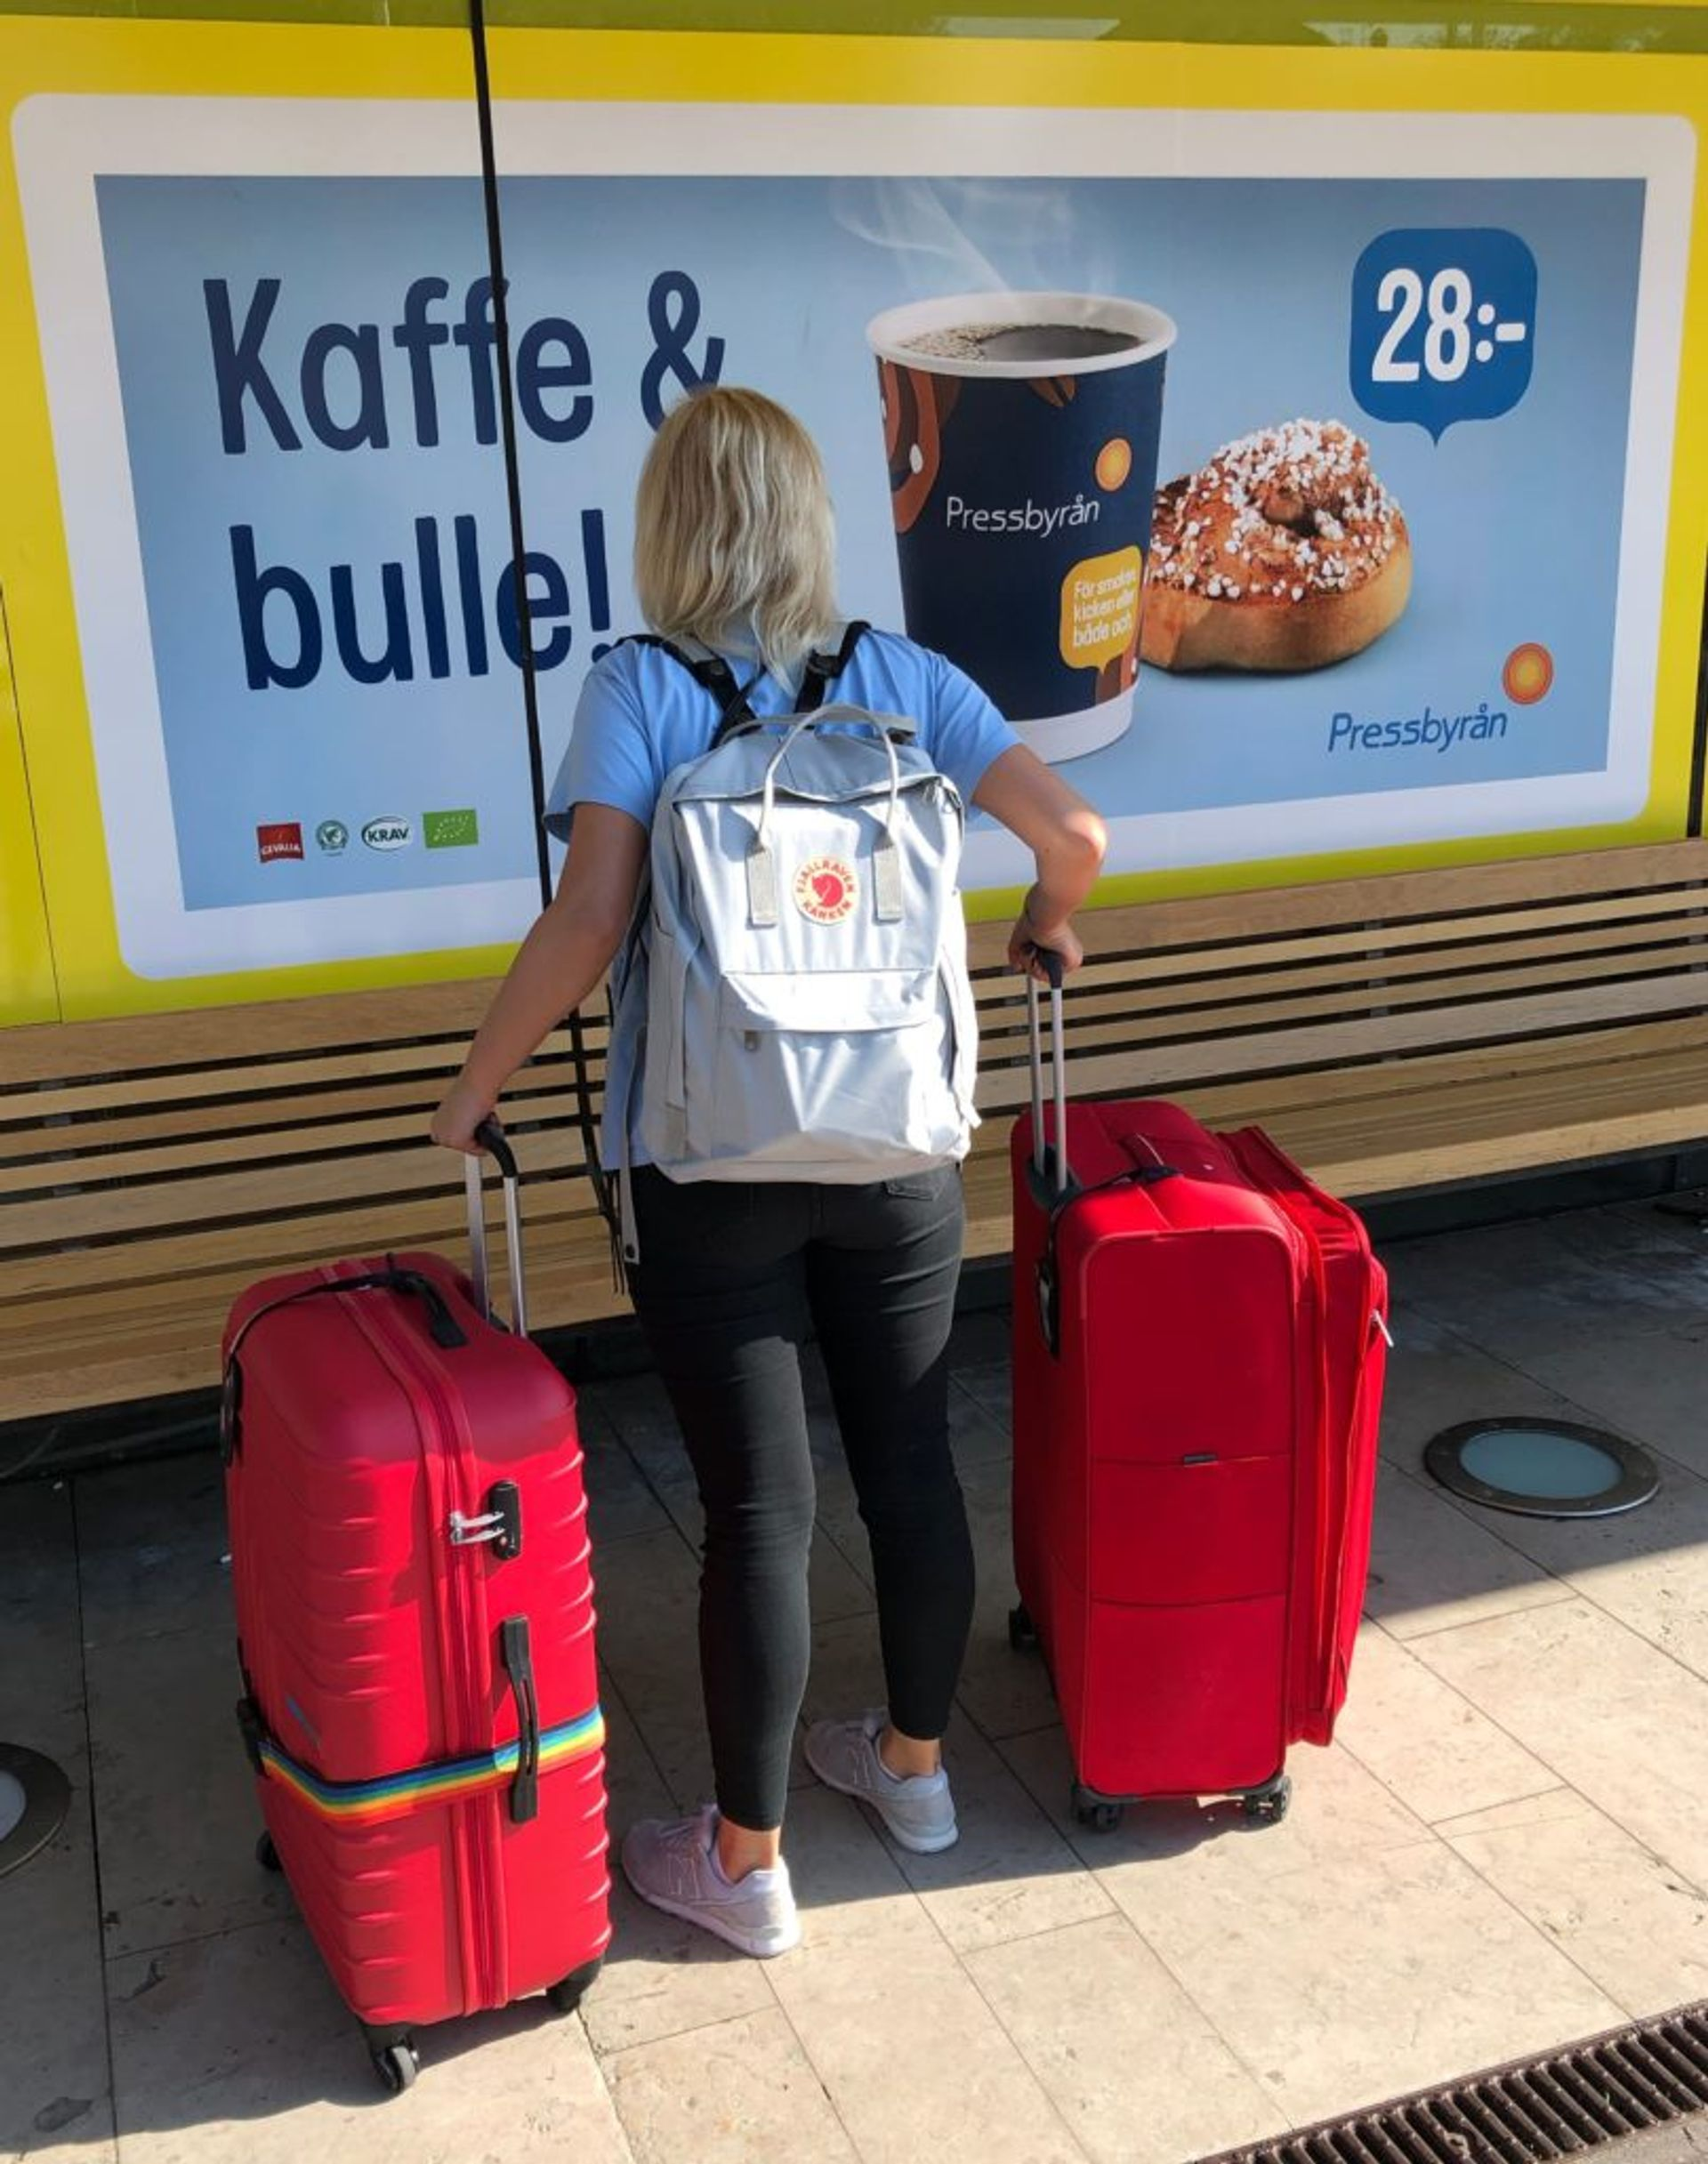 Sara stands in front of a shop at the airport in Sweden holding two large red suitcases.